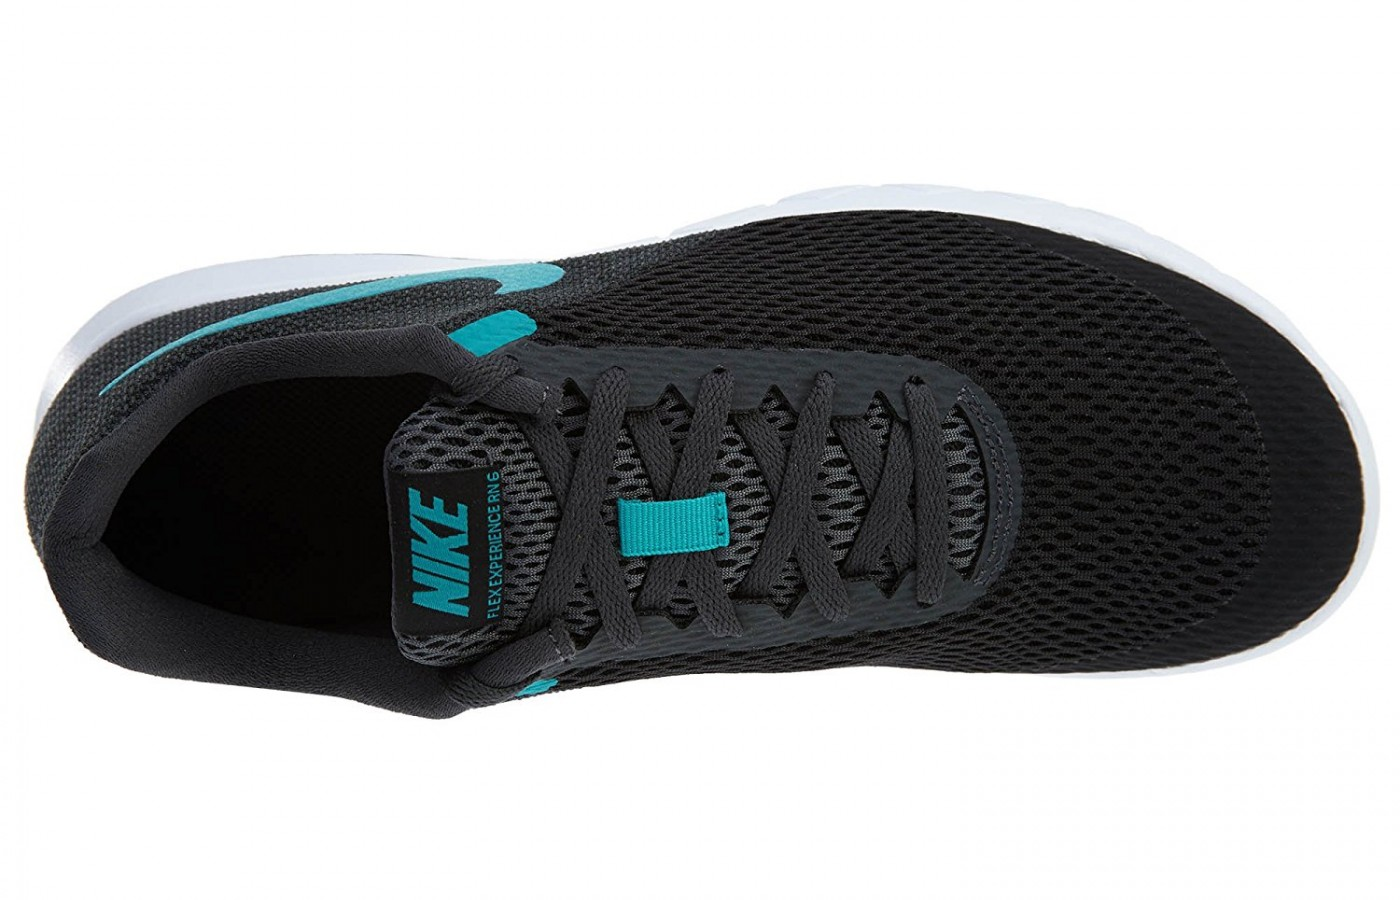 the open mesh throughout the shoe creates great breathability